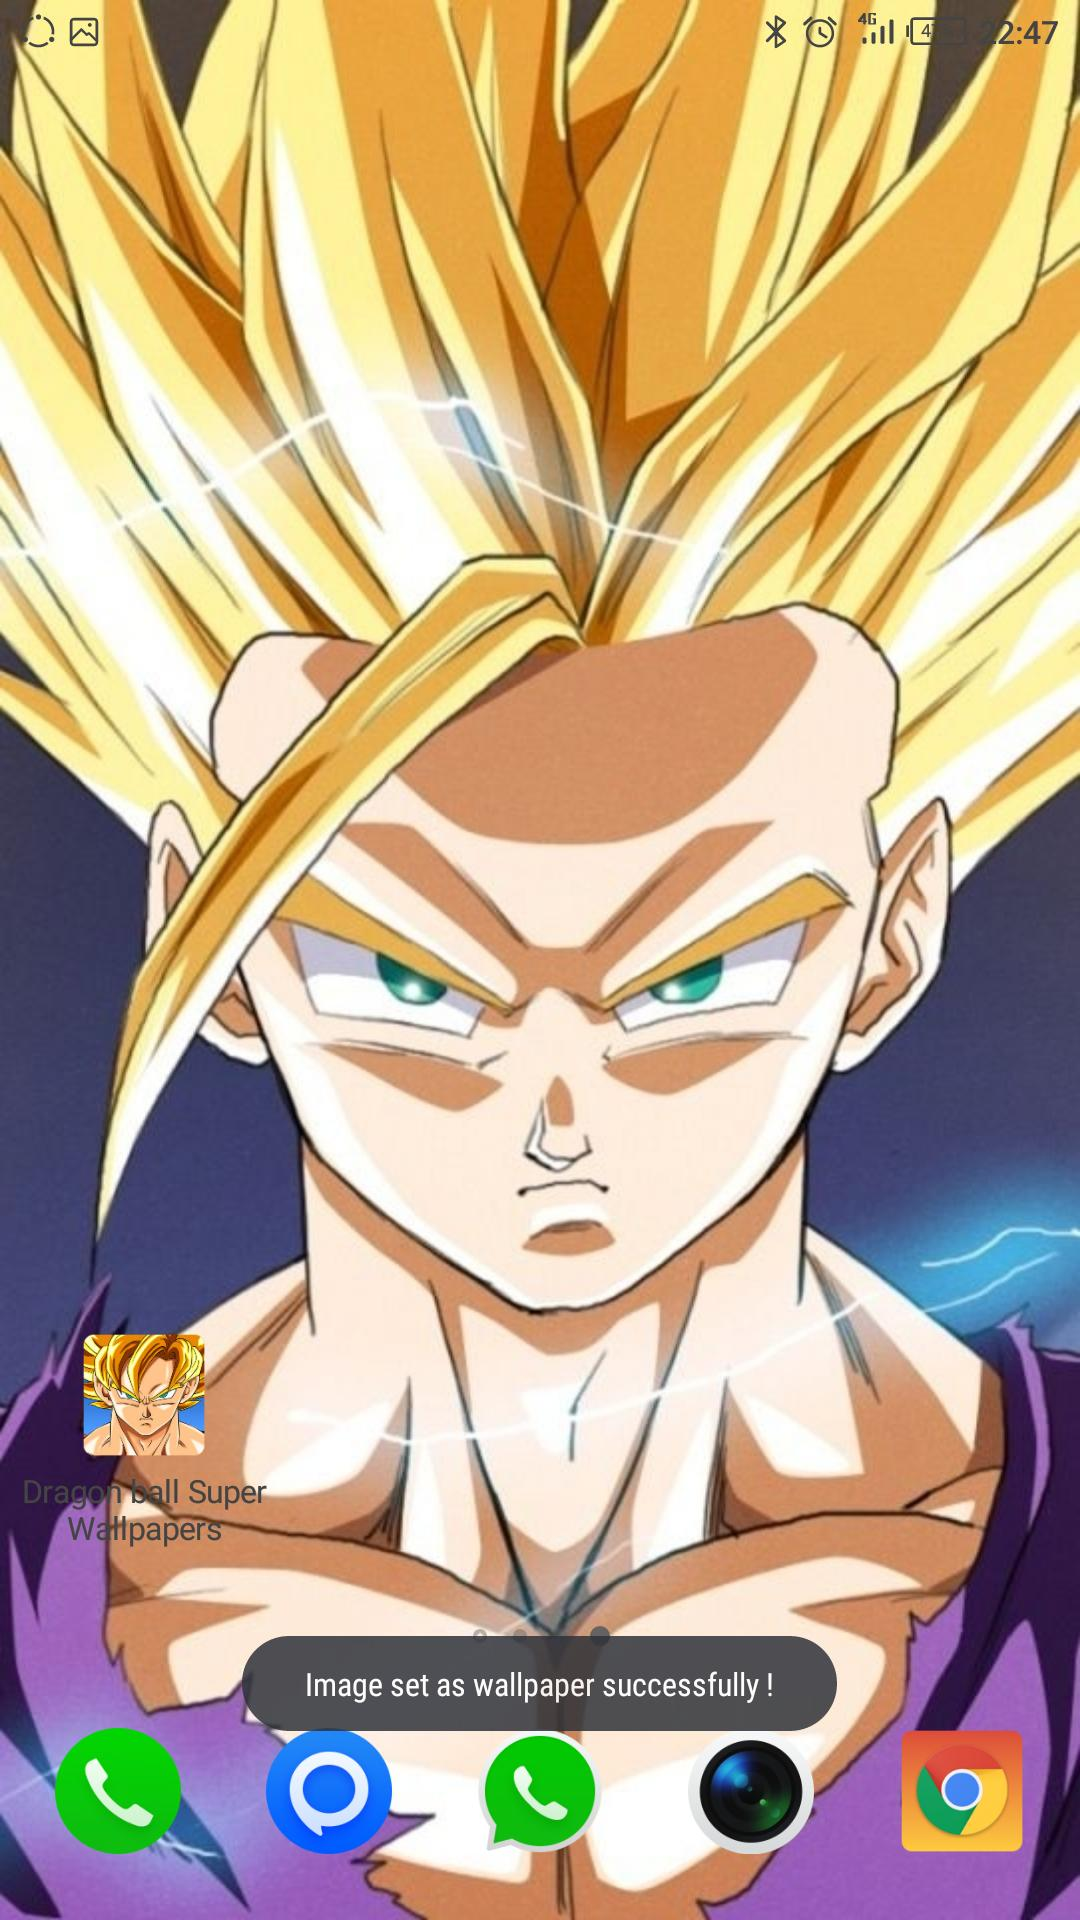 Anime Wallpapers Dragon Ball Super For Android Apk Download